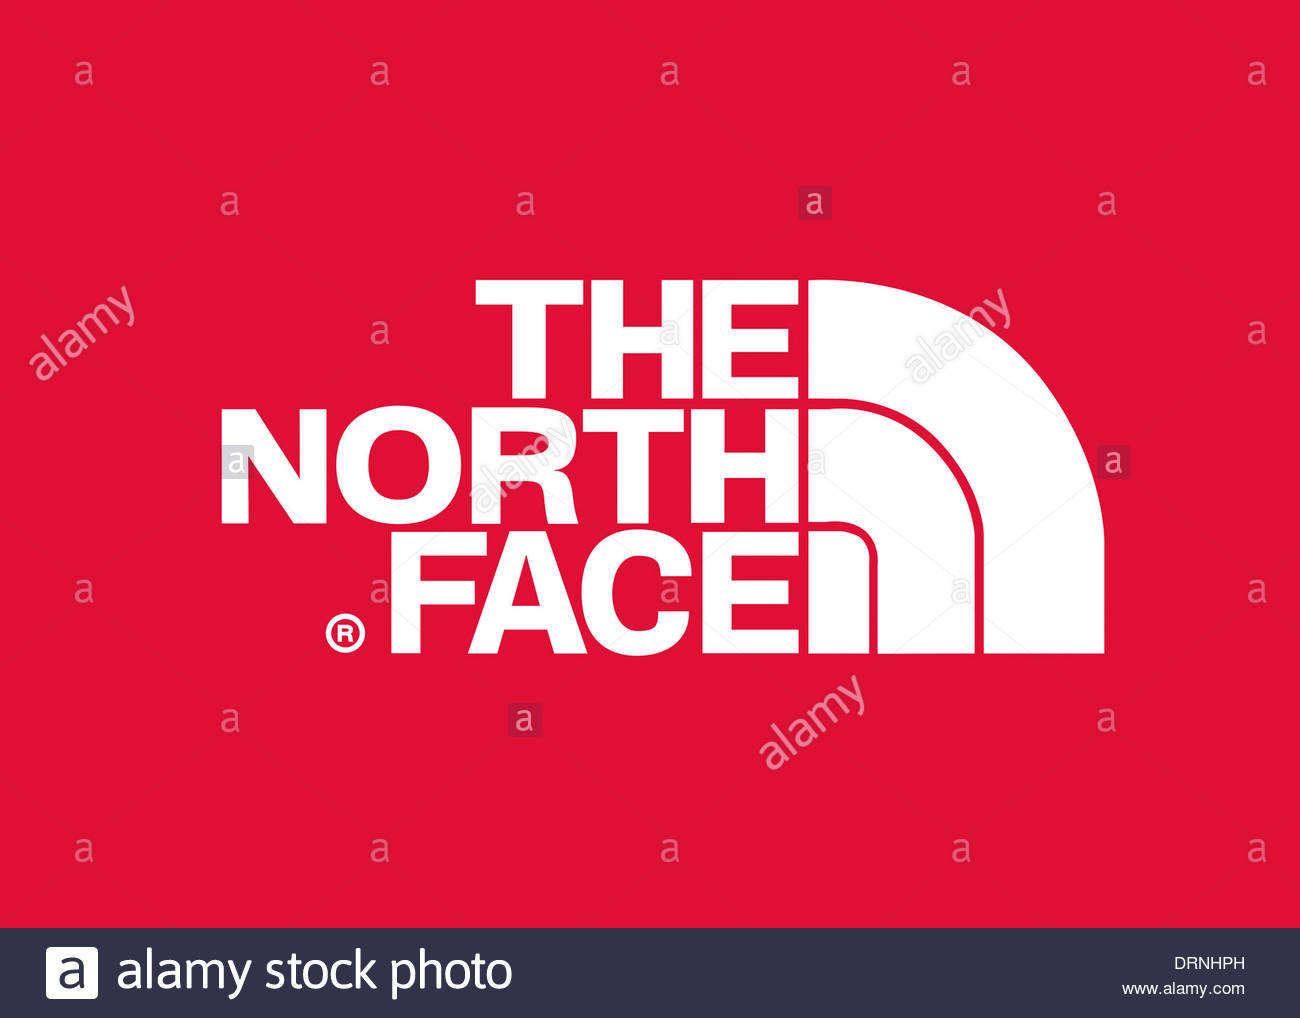 The North face logo symbol flag icon emblem Stock Photo, Royalty ...